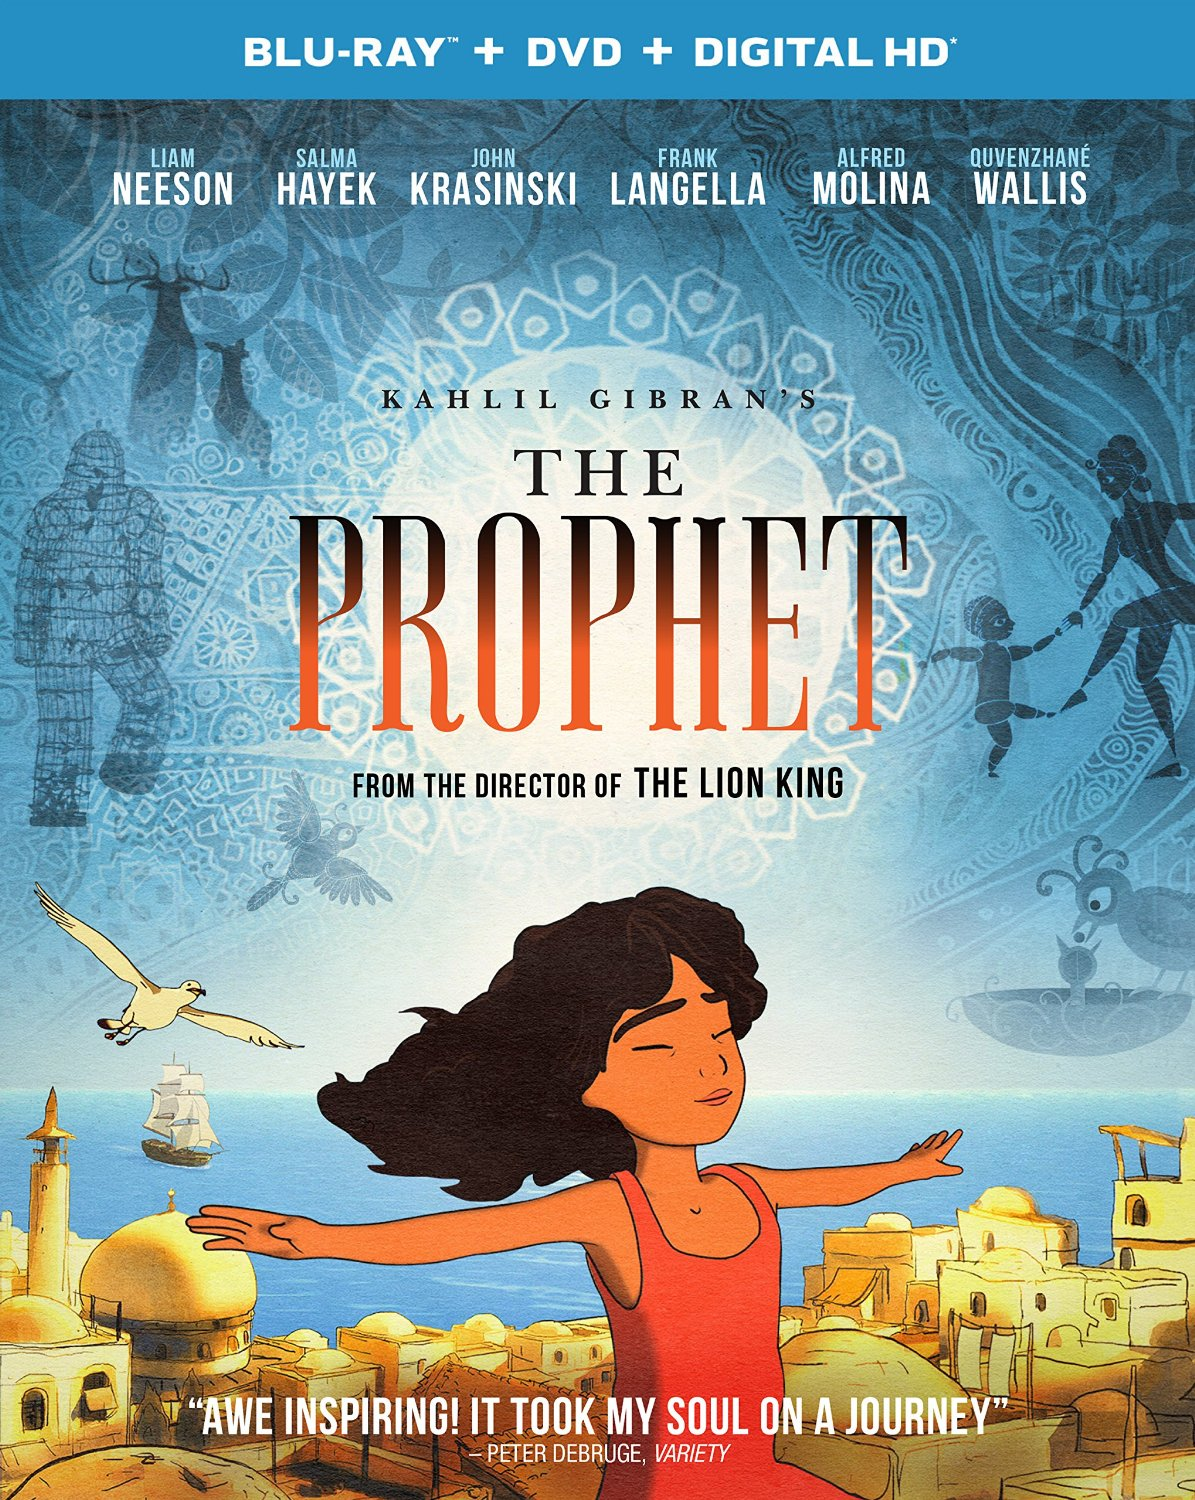 THE PROPHET Blu-ray Review